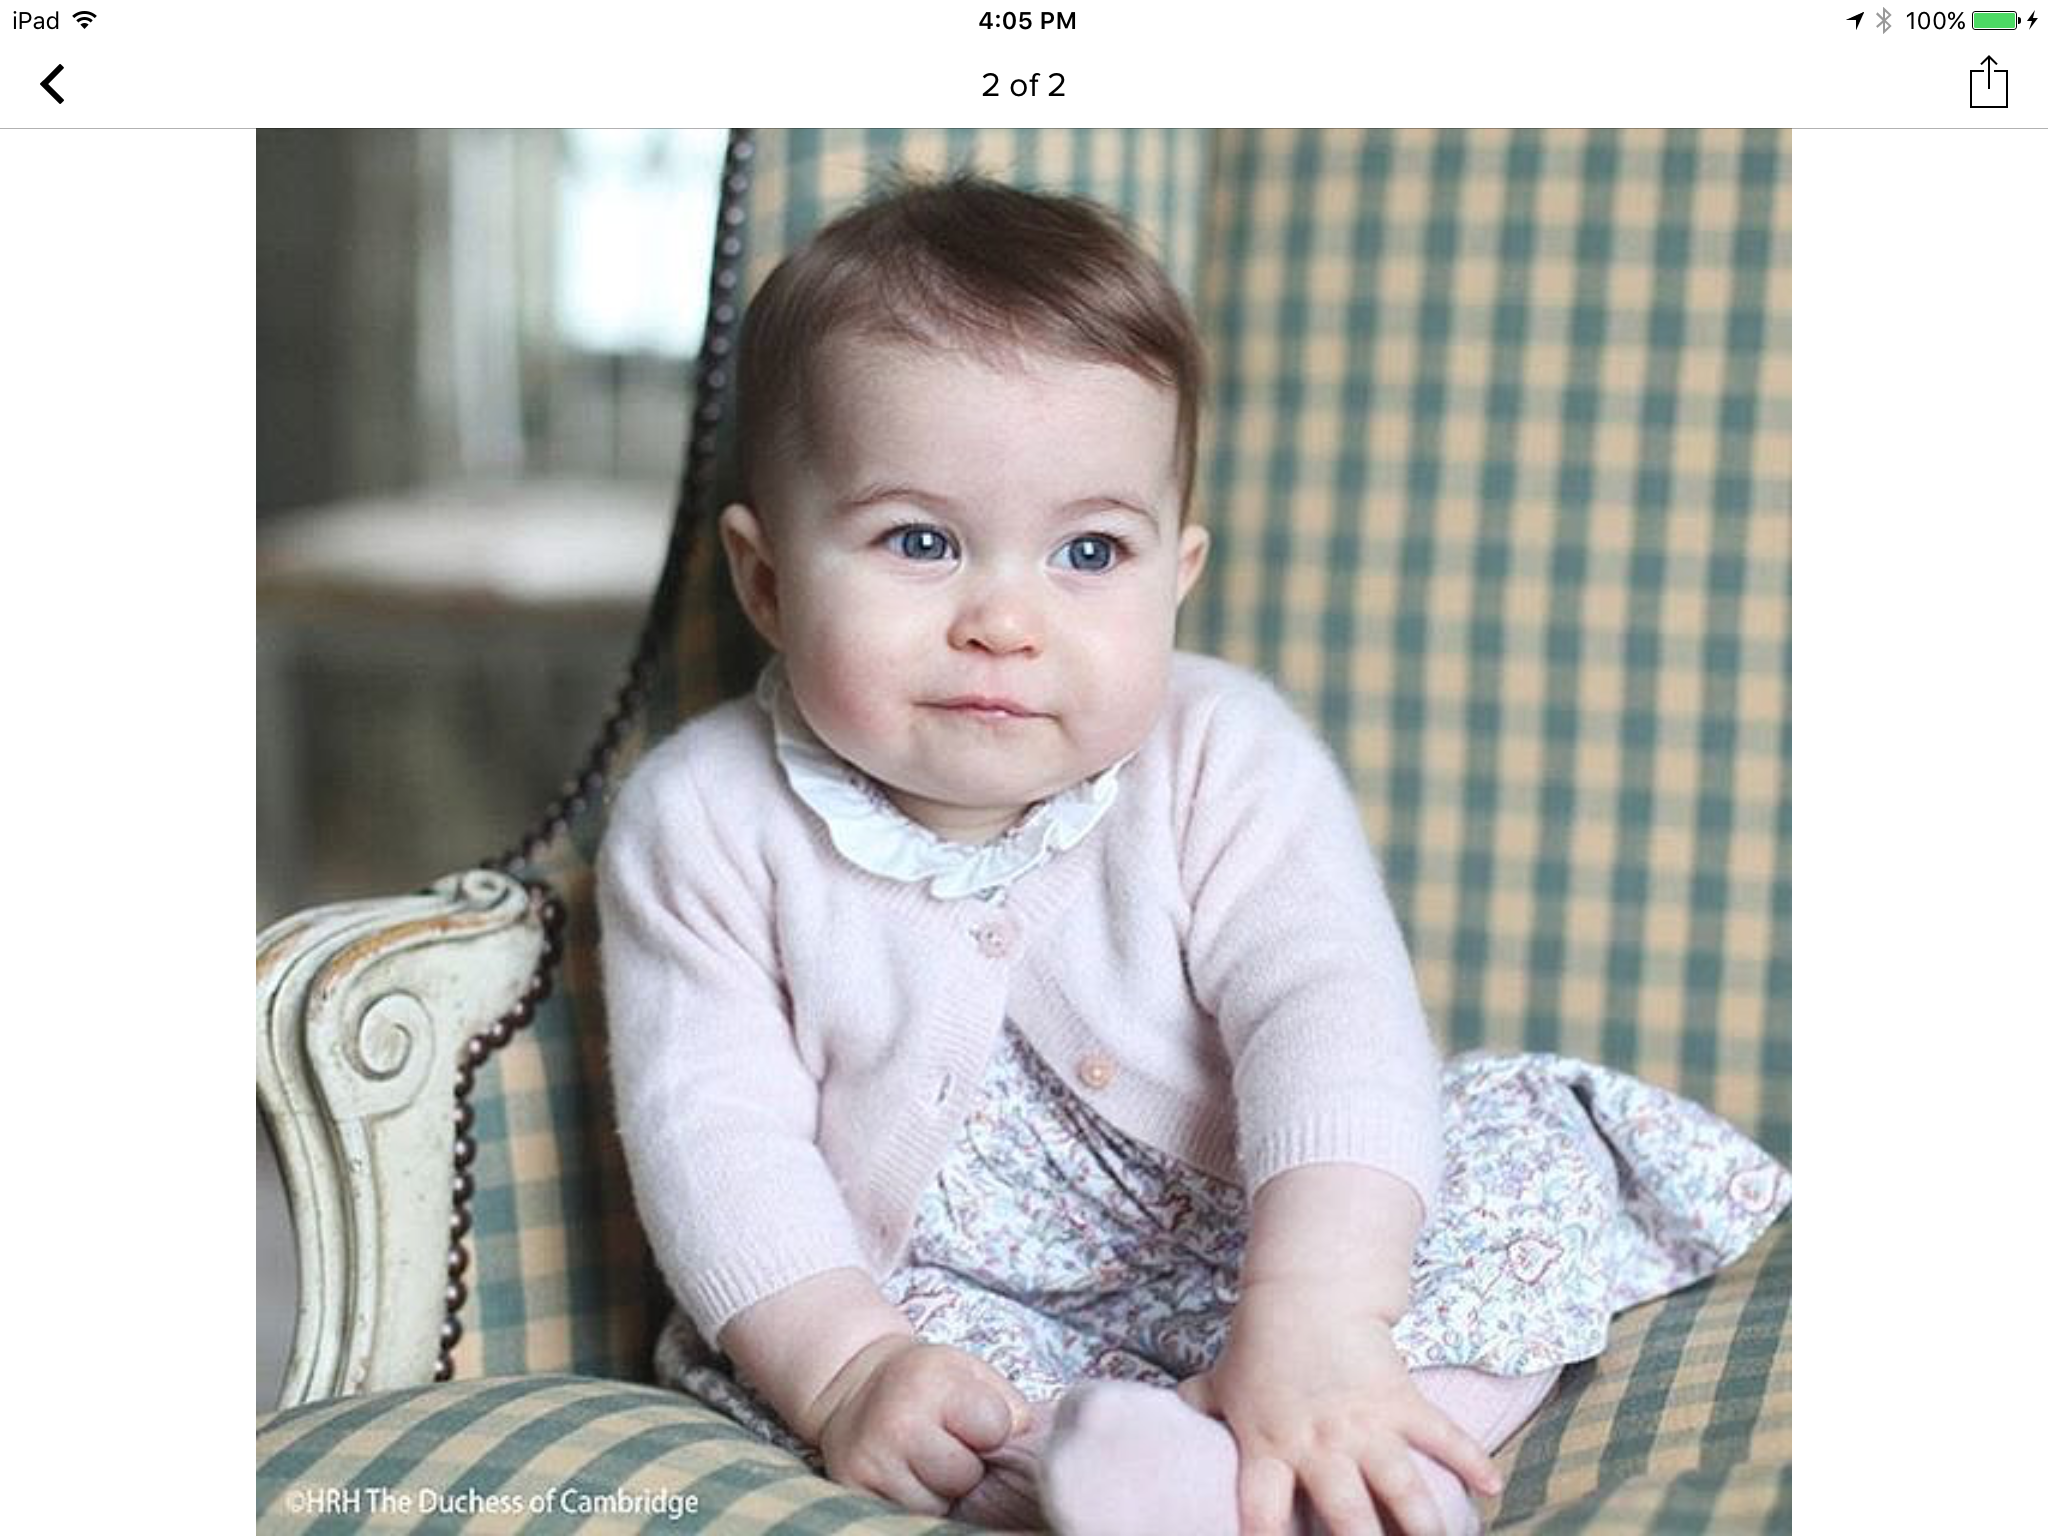 Princess charlotte of britain 7 months old princess charlotte dresses princess charlotte pictures